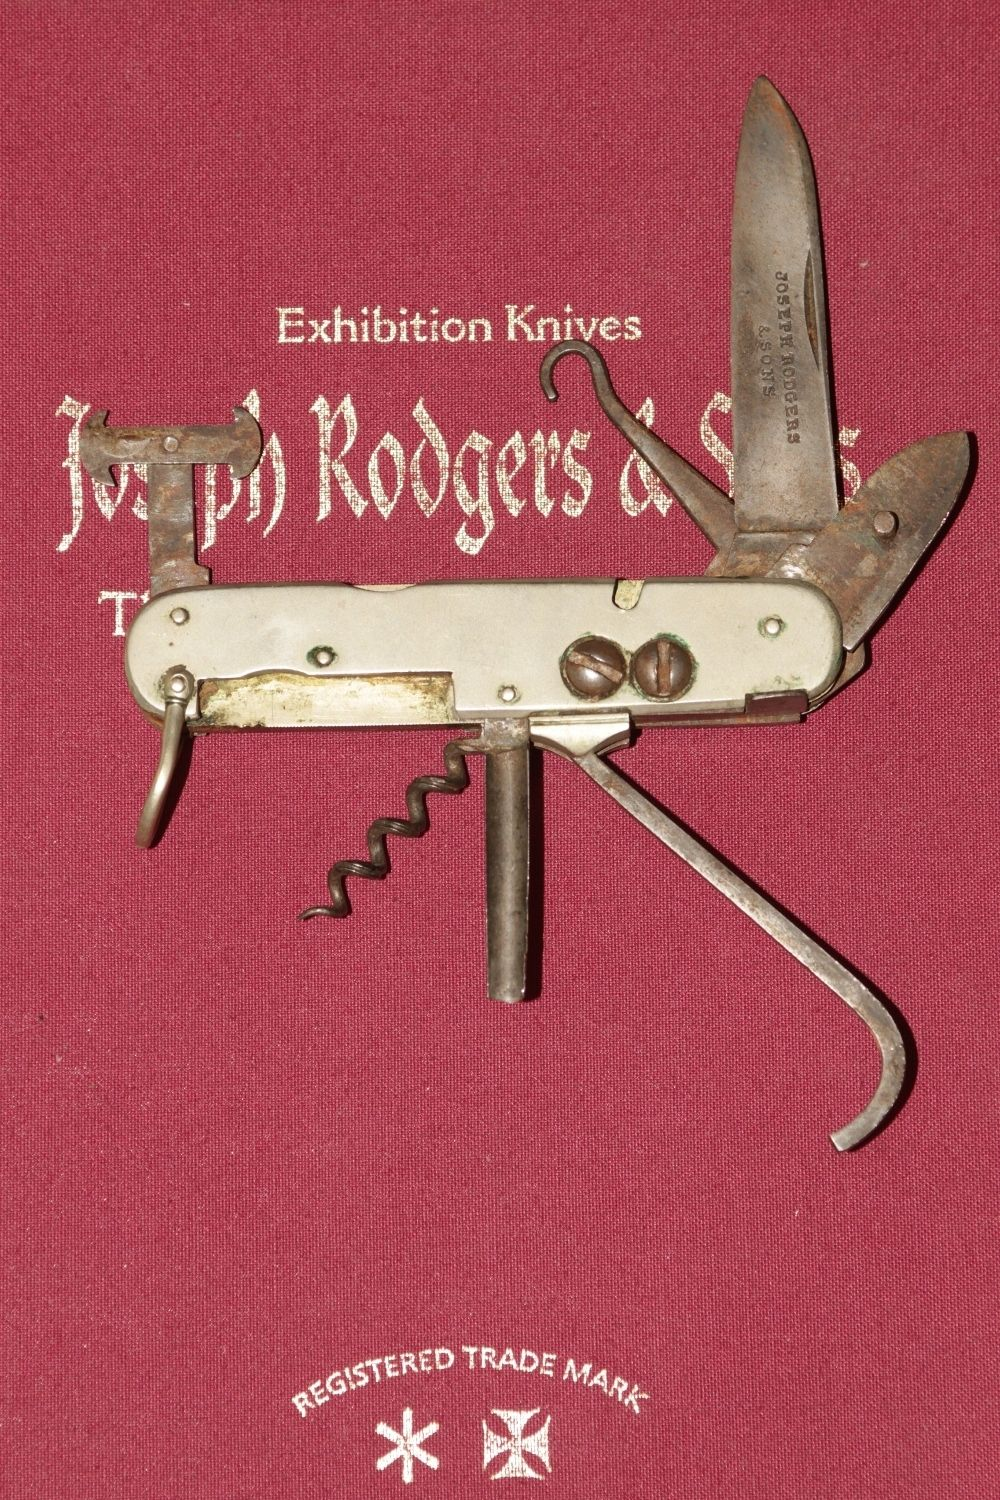 Joseph Rodgers Amp Sons Sportsmans Campaign Knife 1800s